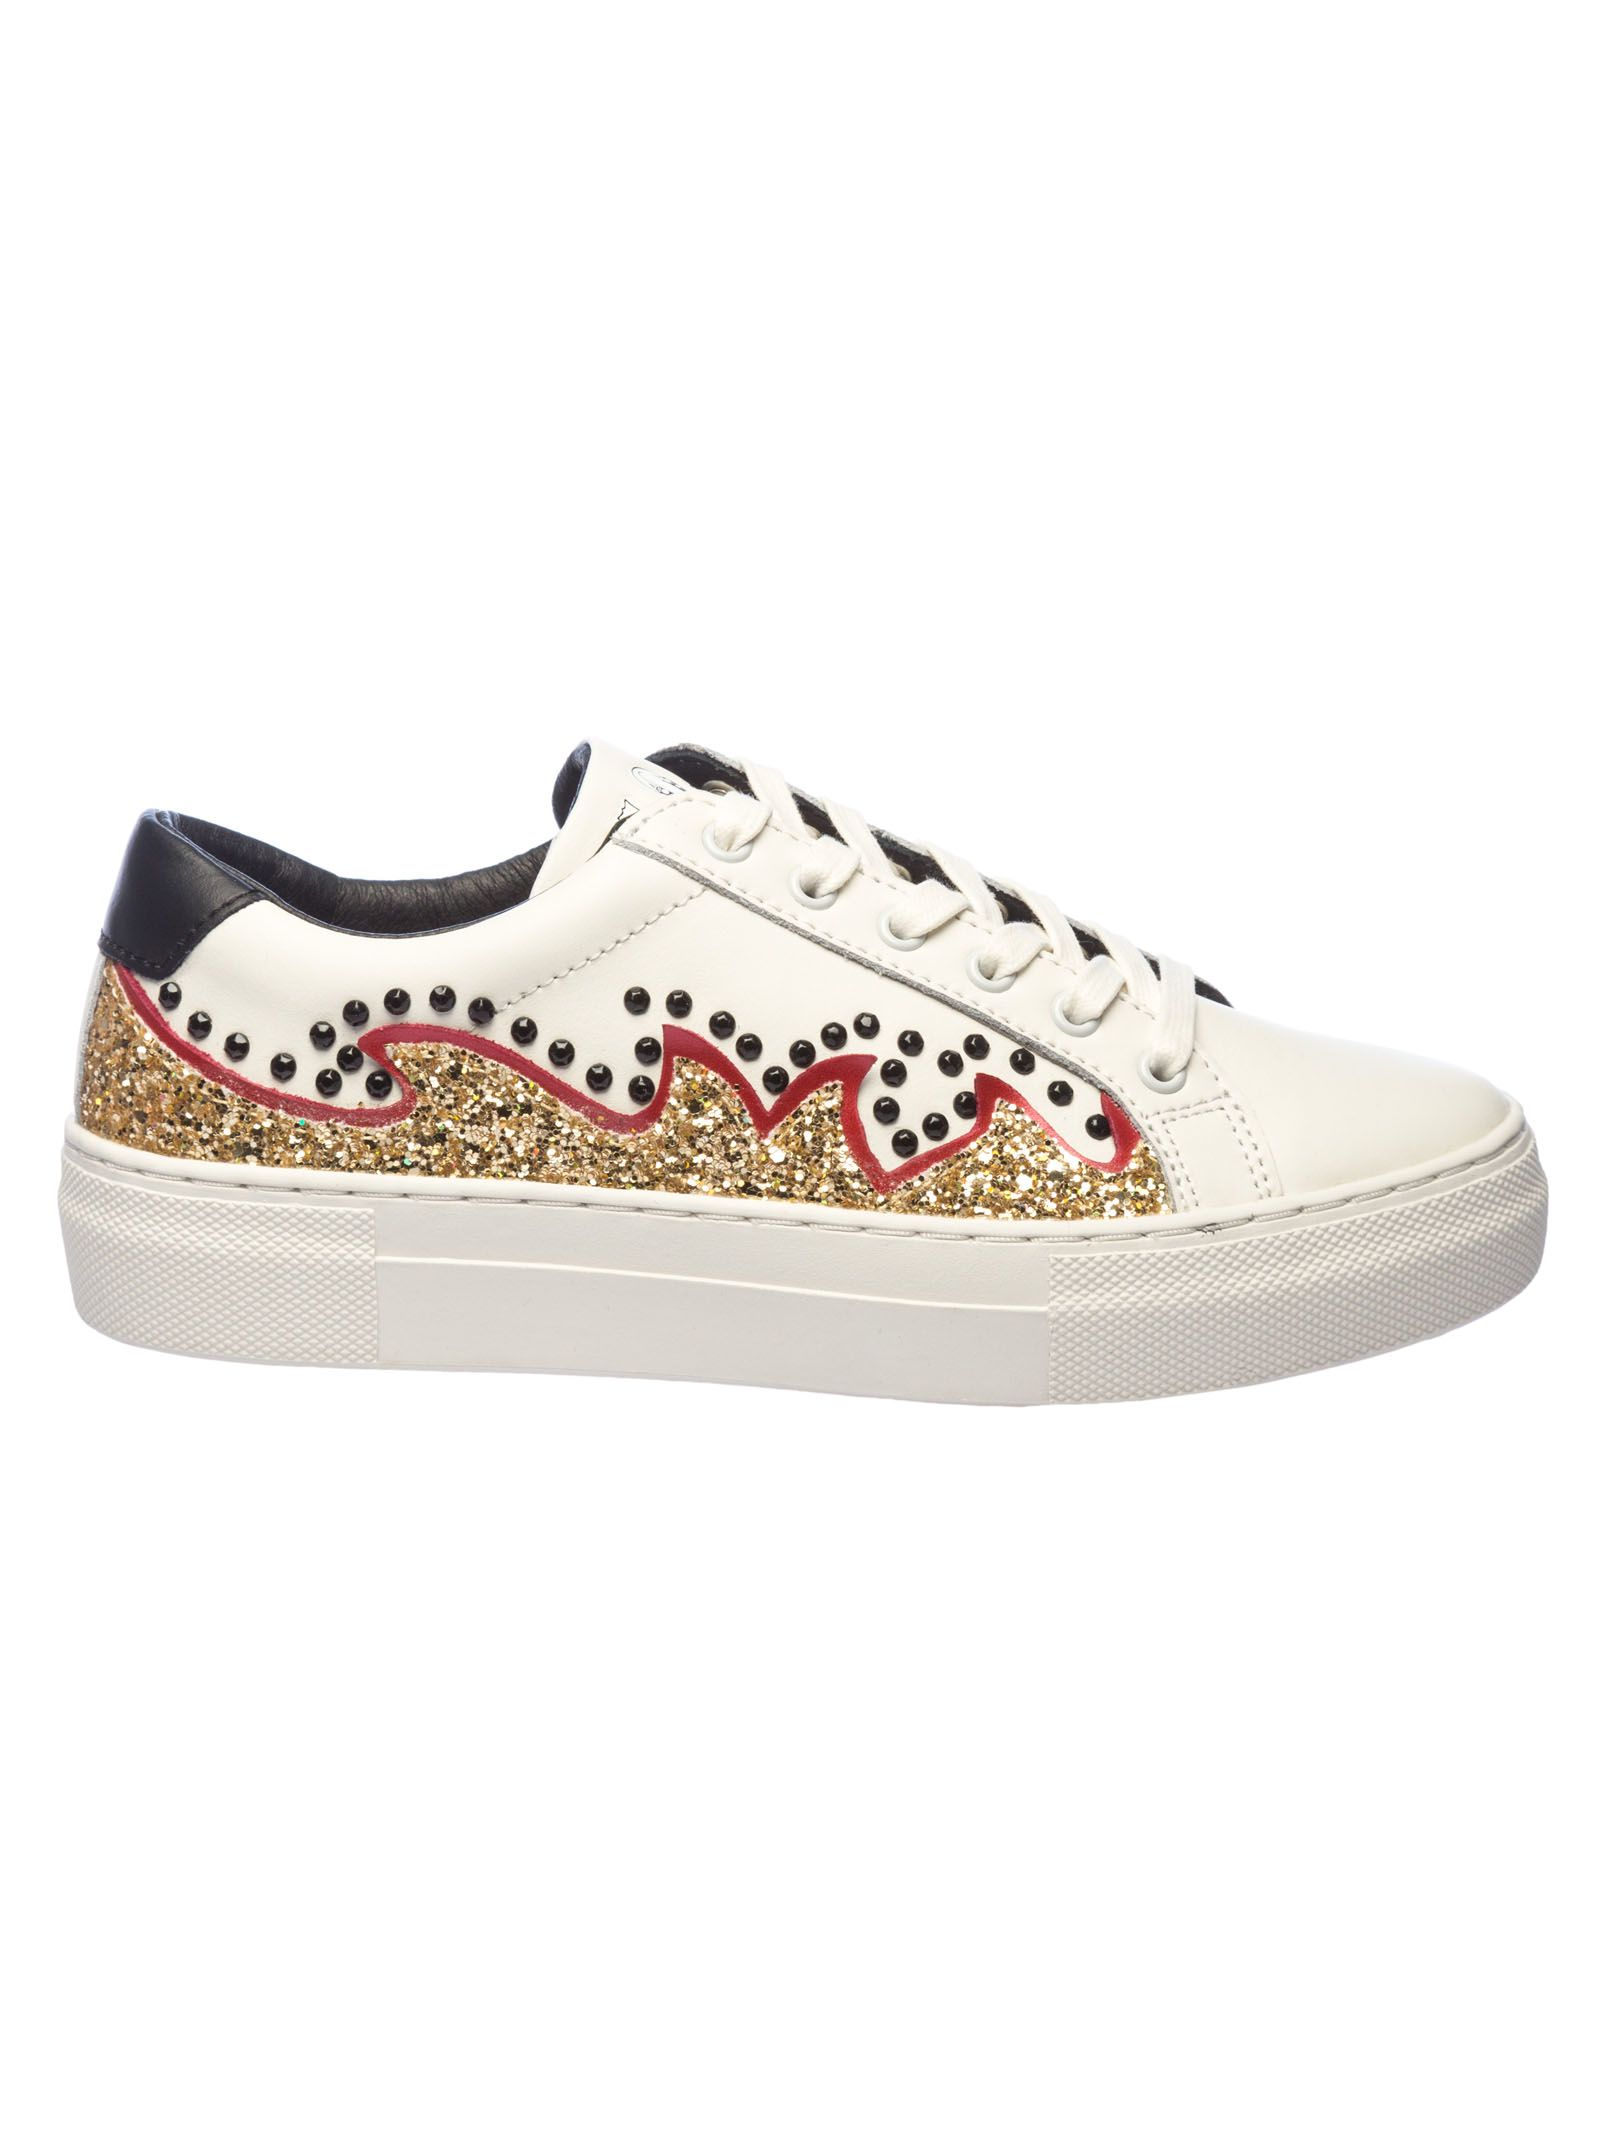 MOA COLLECTION Moa Usa Glittery And Crystal Embellished Sneakers in White